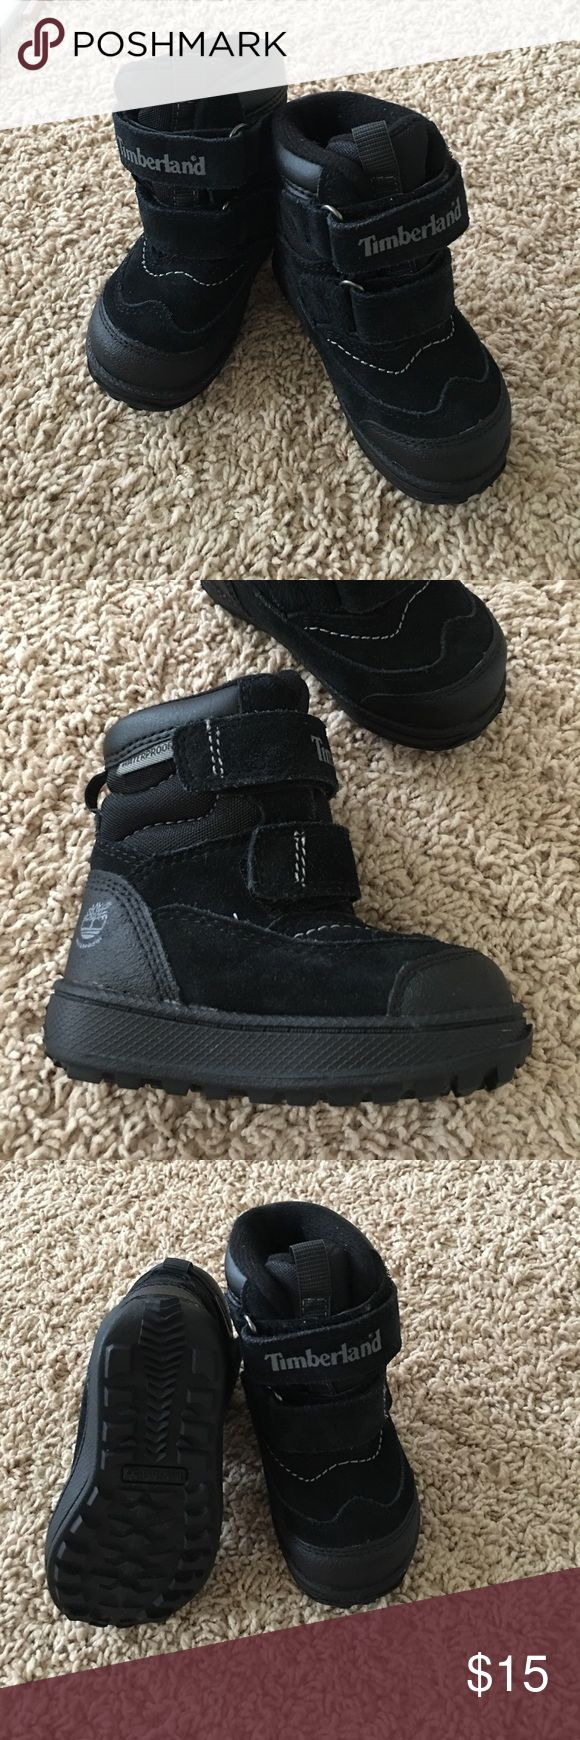 Timberland waterproof baby boots size 4.5 Black waterproof boots walker/baby. Size4.5. Easy to put on. Like new. Timberland Shoes Boots